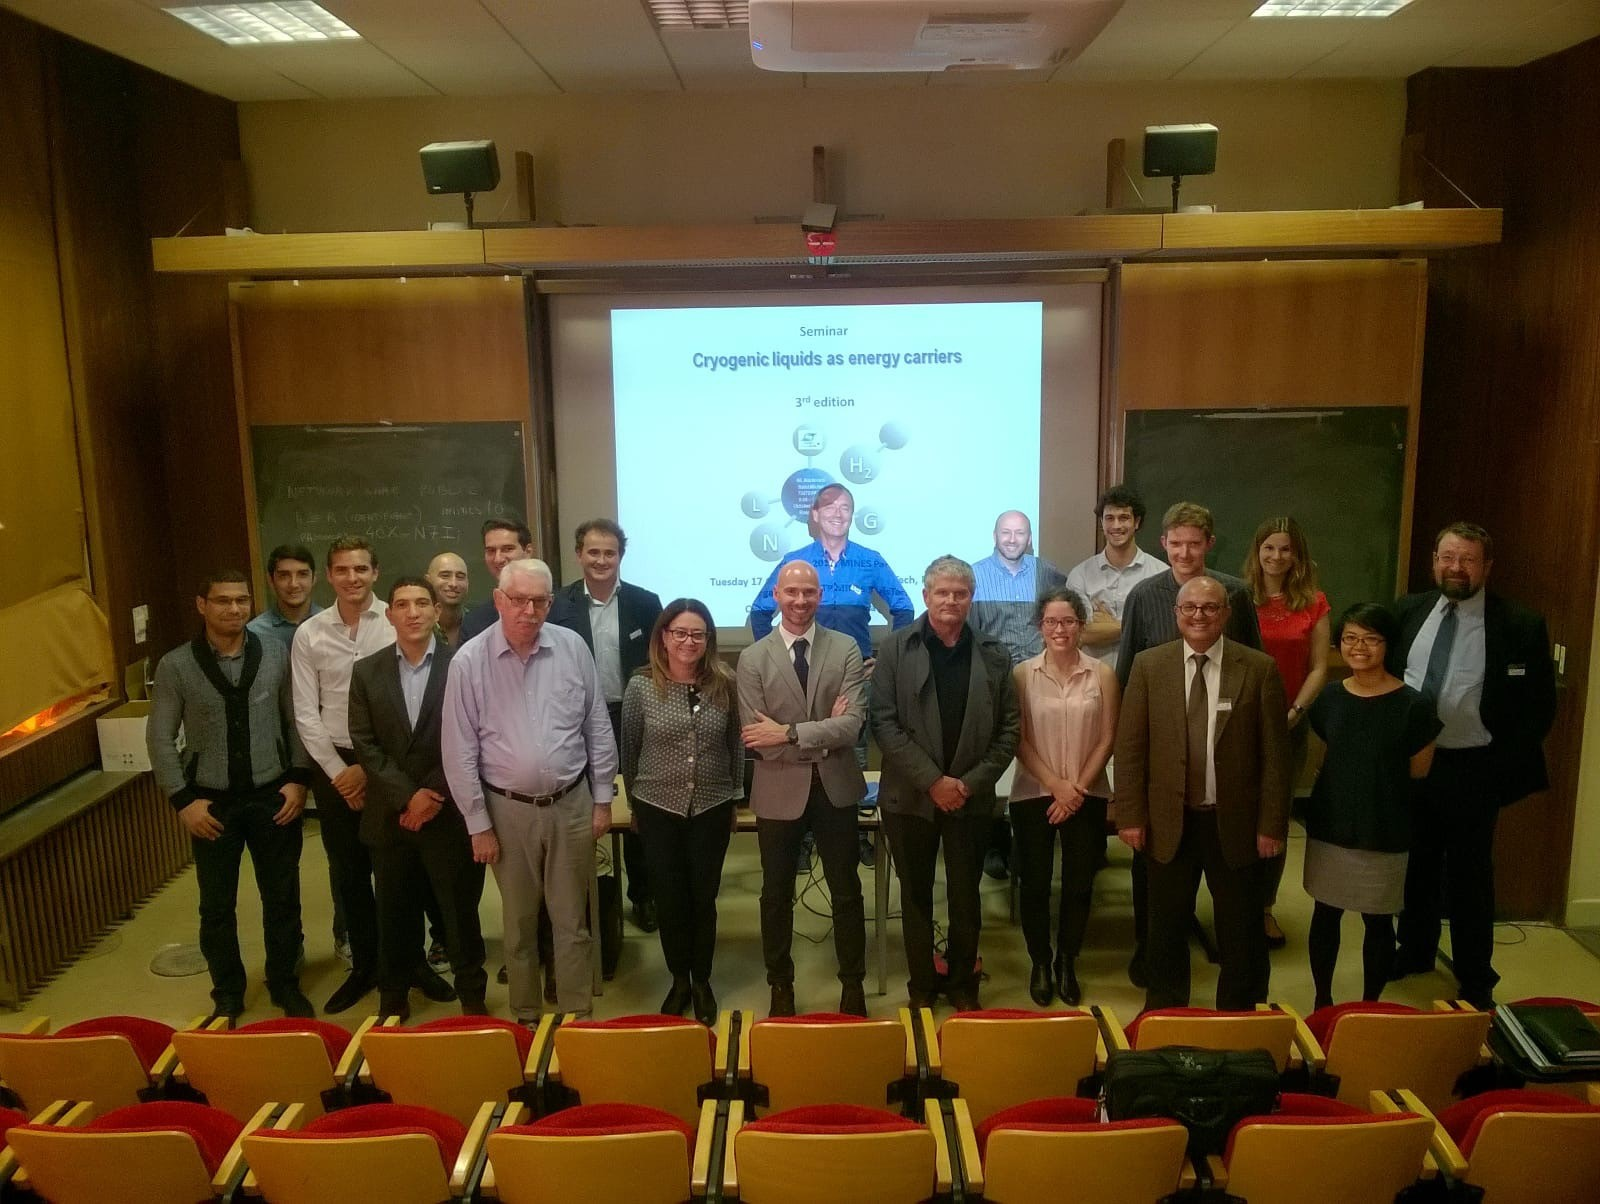 """The 3rd edition of the seminar """"Cryogenic liquids as energy carriers"""" organized by CTP"""